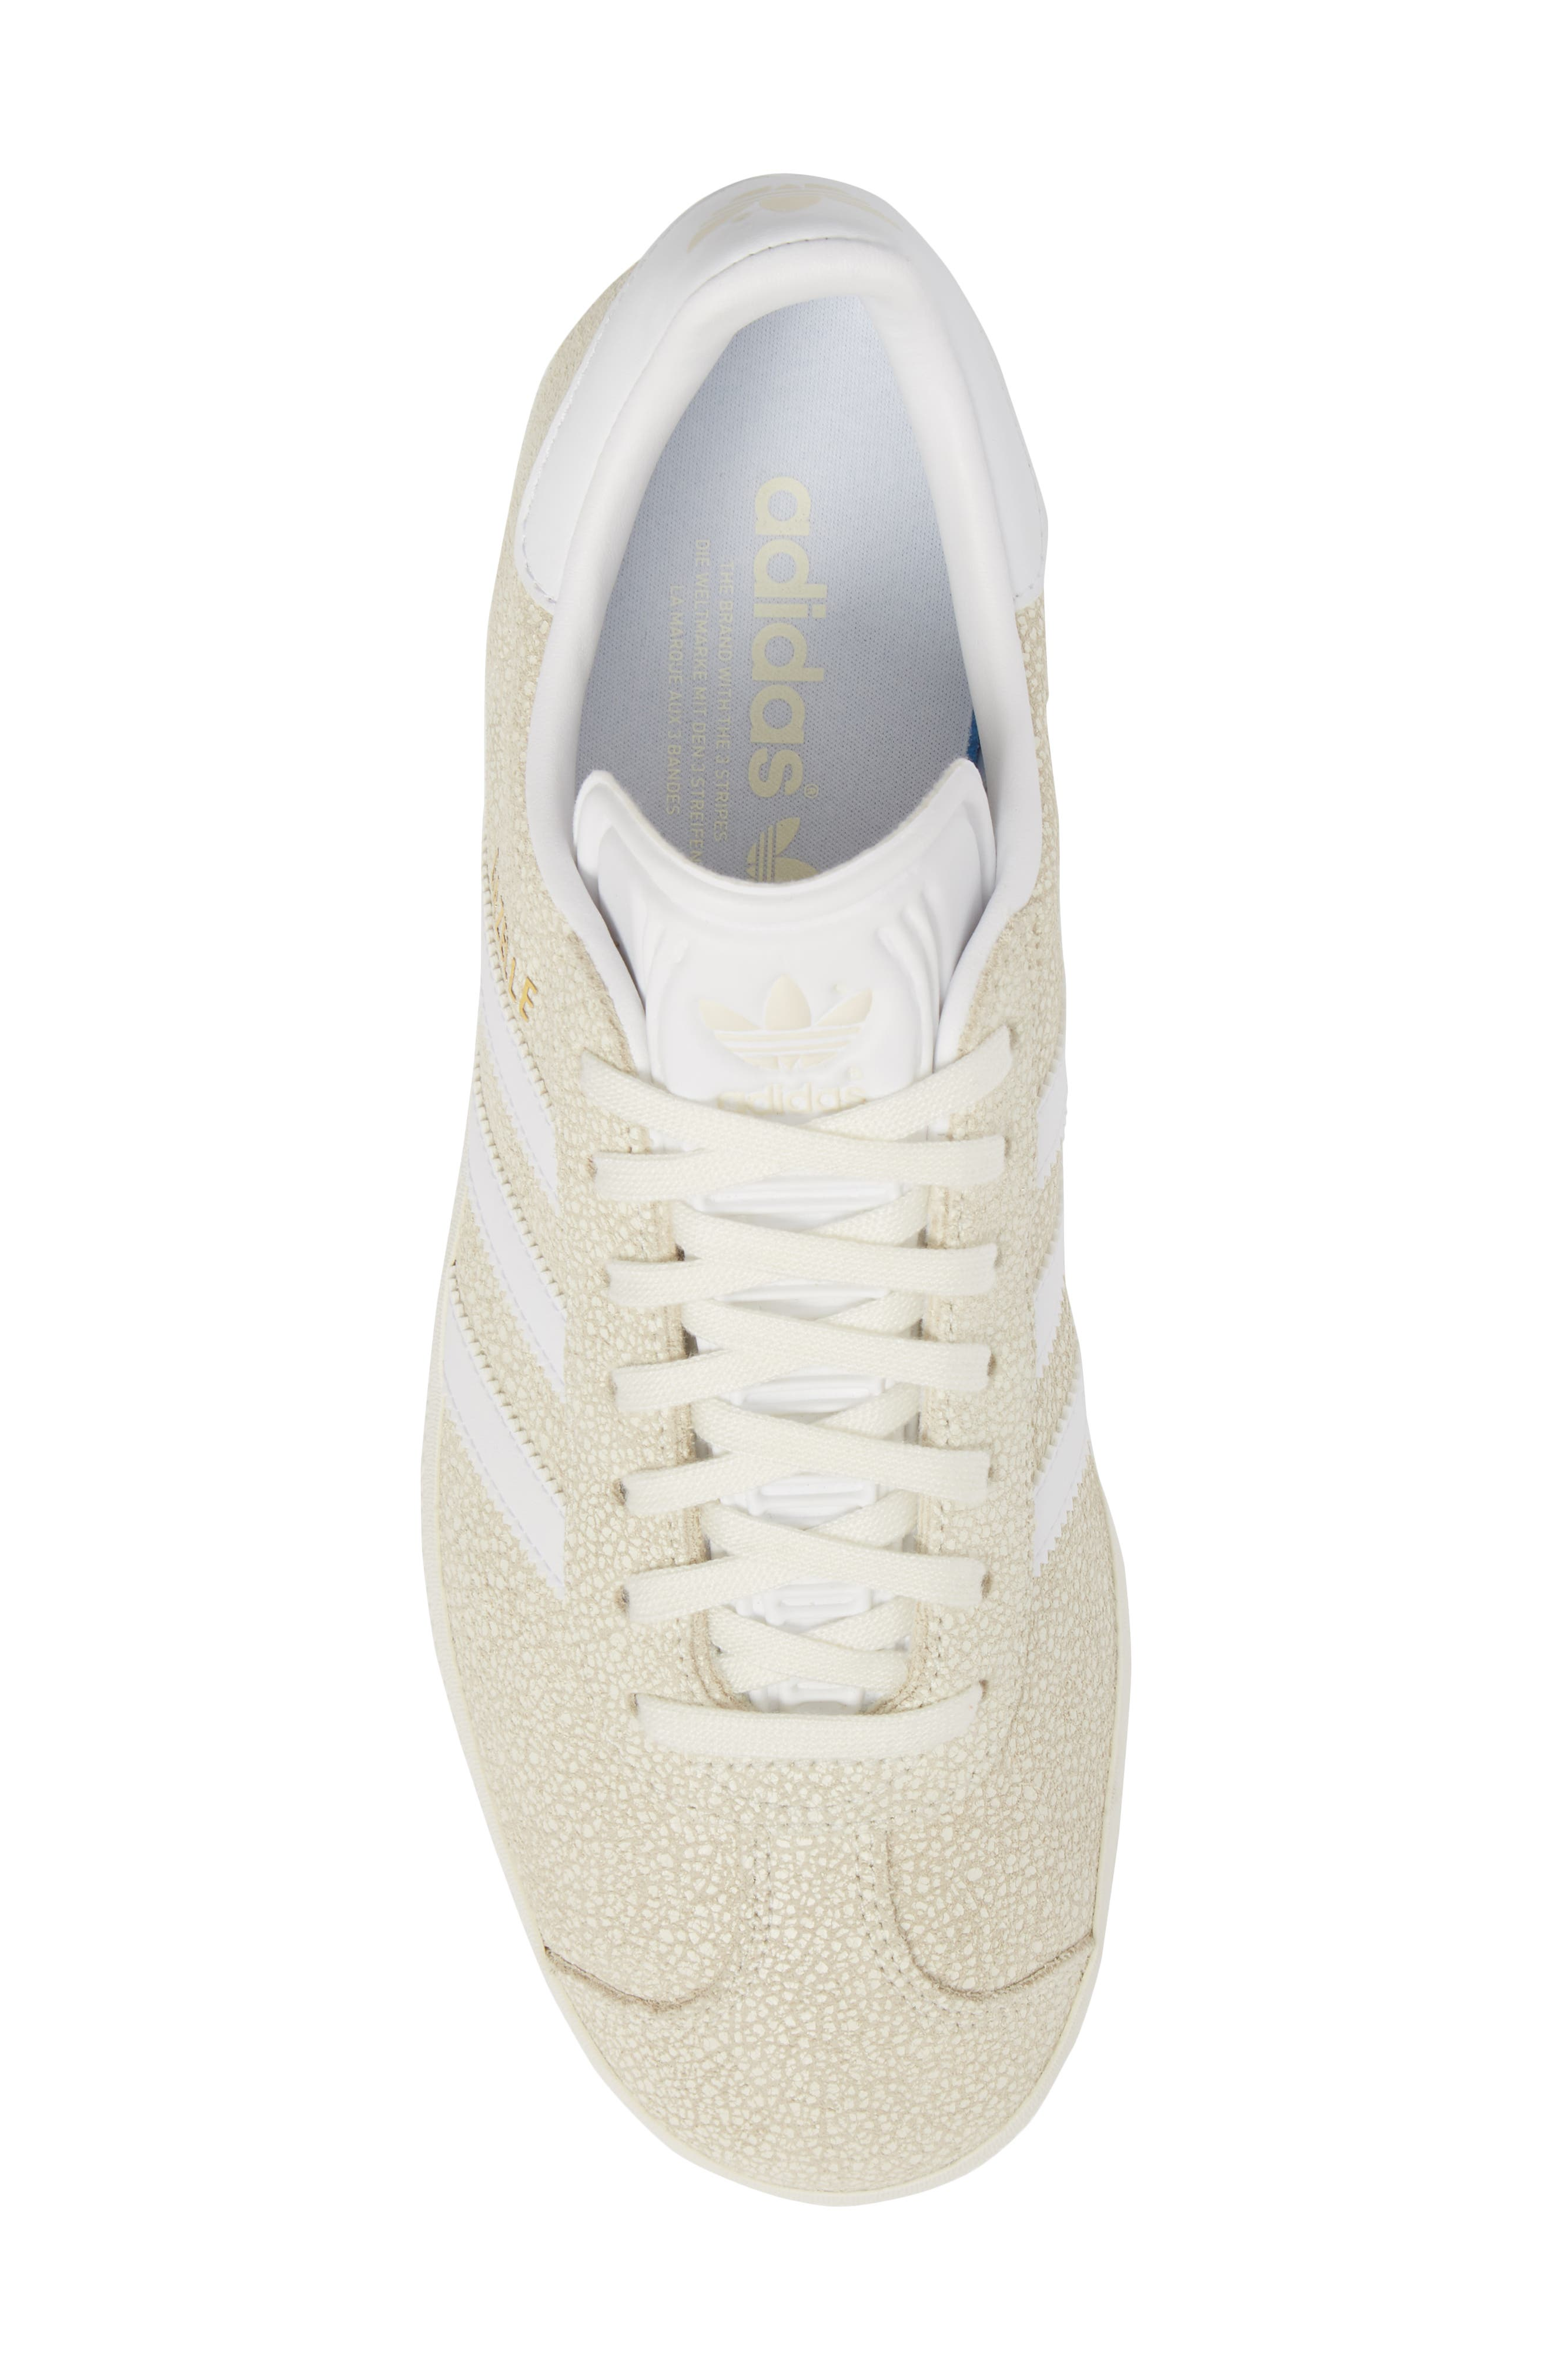 Gazelle Sneaker,                             Alternate thumbnail 9, color,                             Off White/ White/ Off White